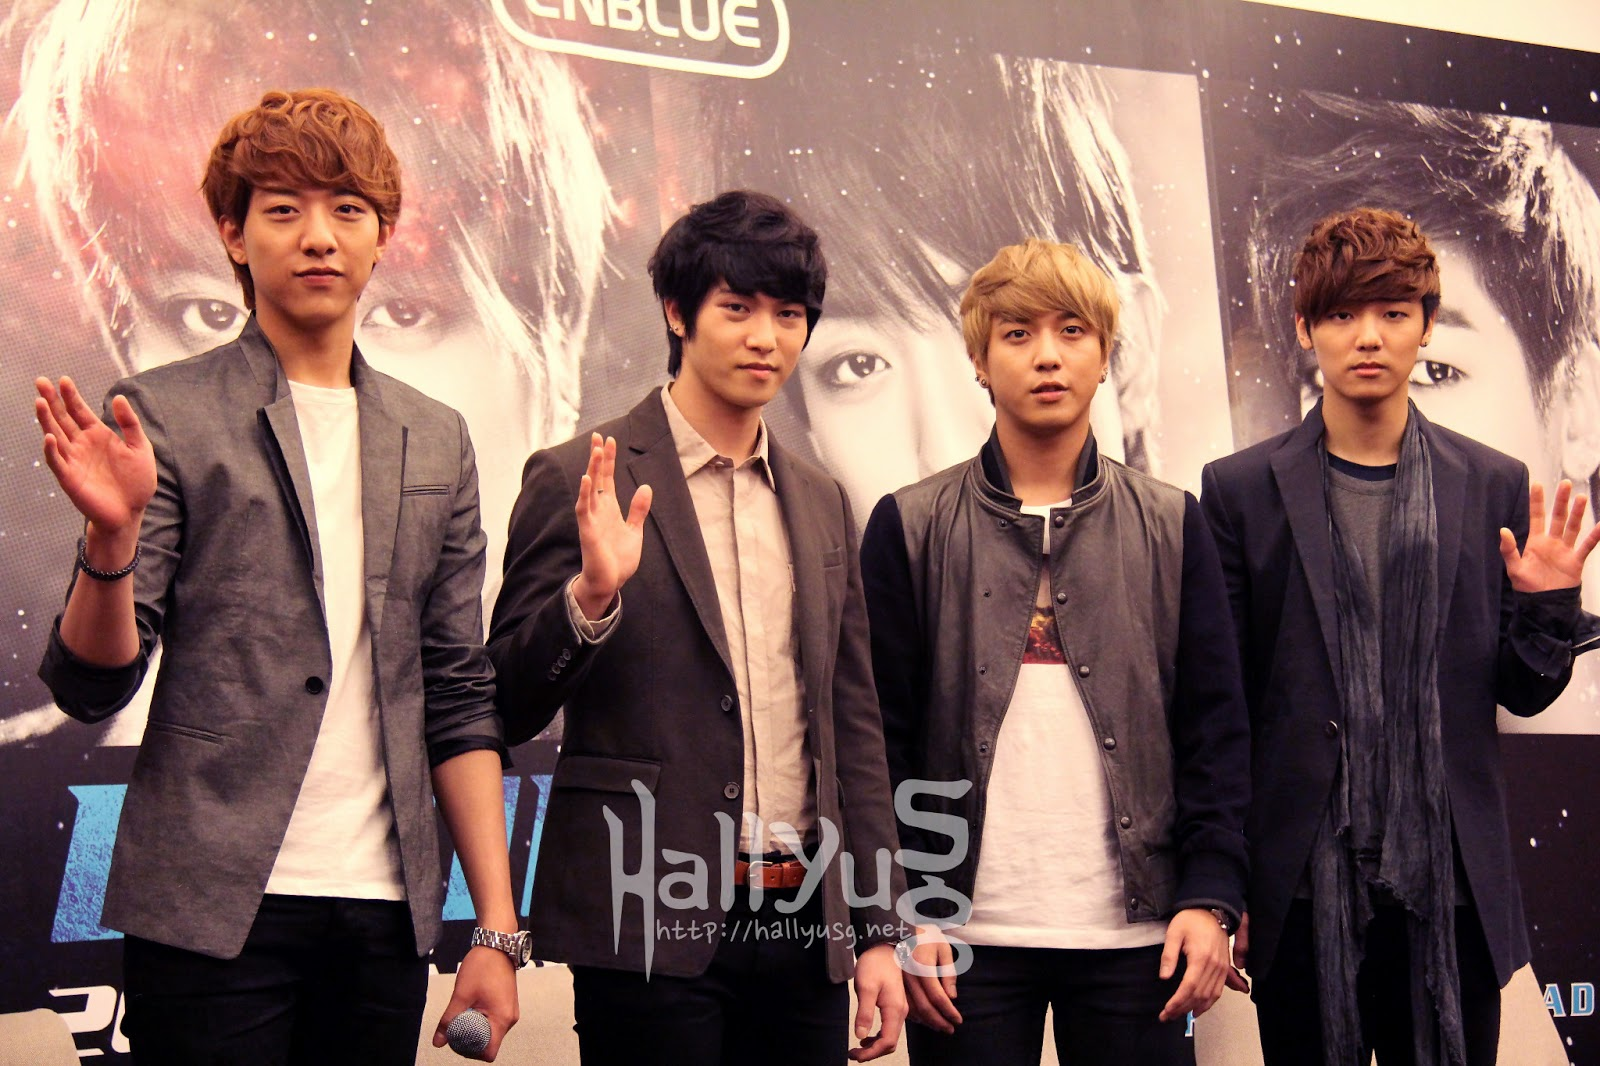 CNBLUE returns to Singapore for their Blue Moon World Tour Concert